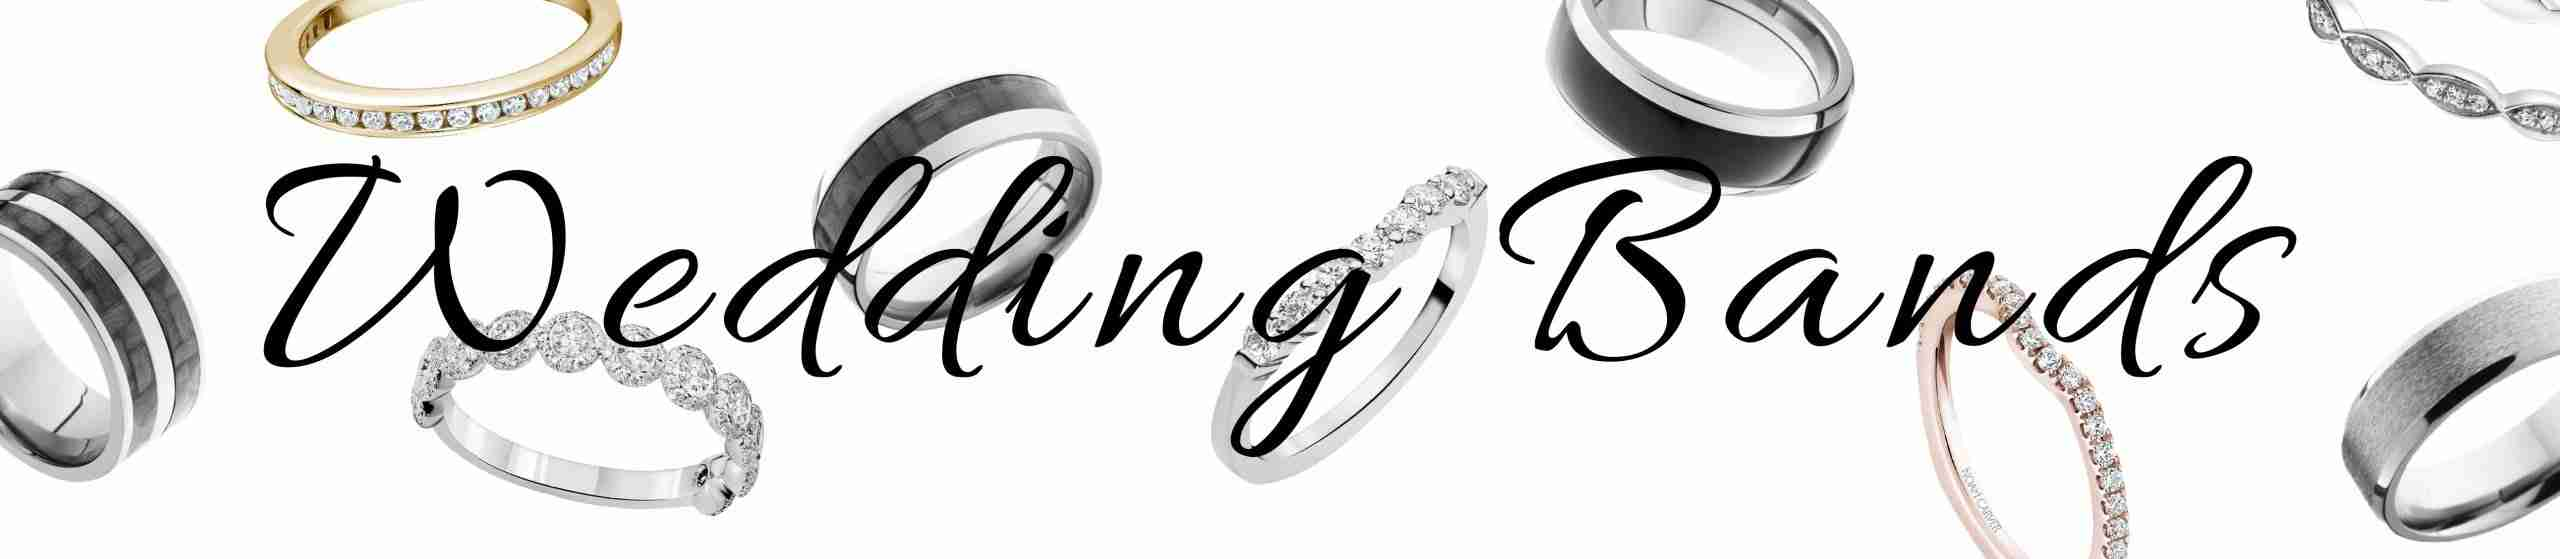 Wedding Bands Page Banner